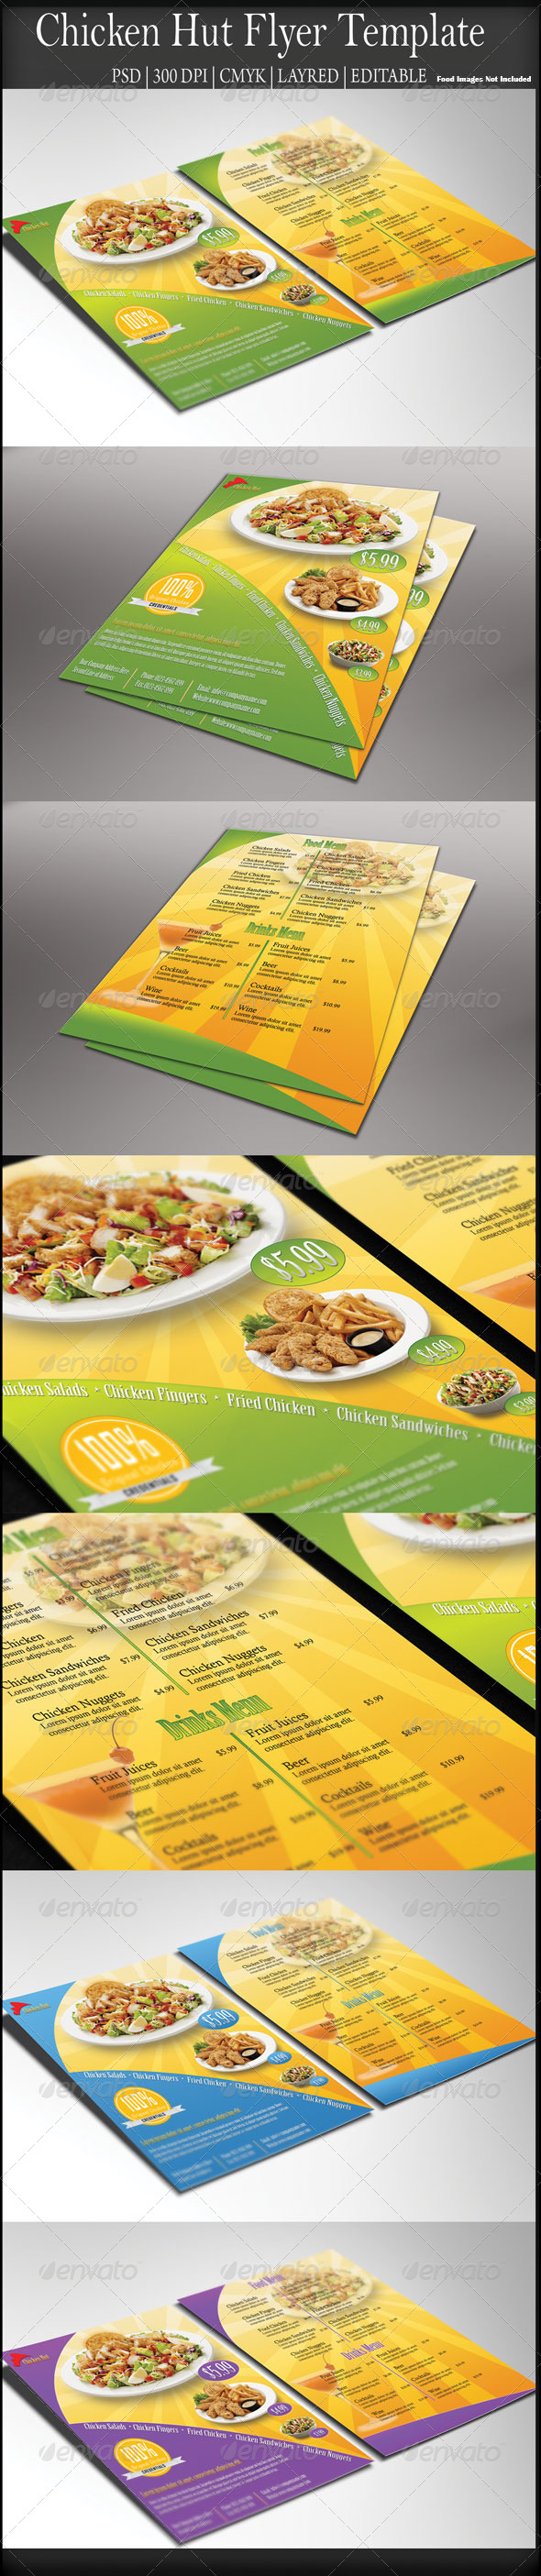 GraphicRiver Chicken Hut Flyer 7302181